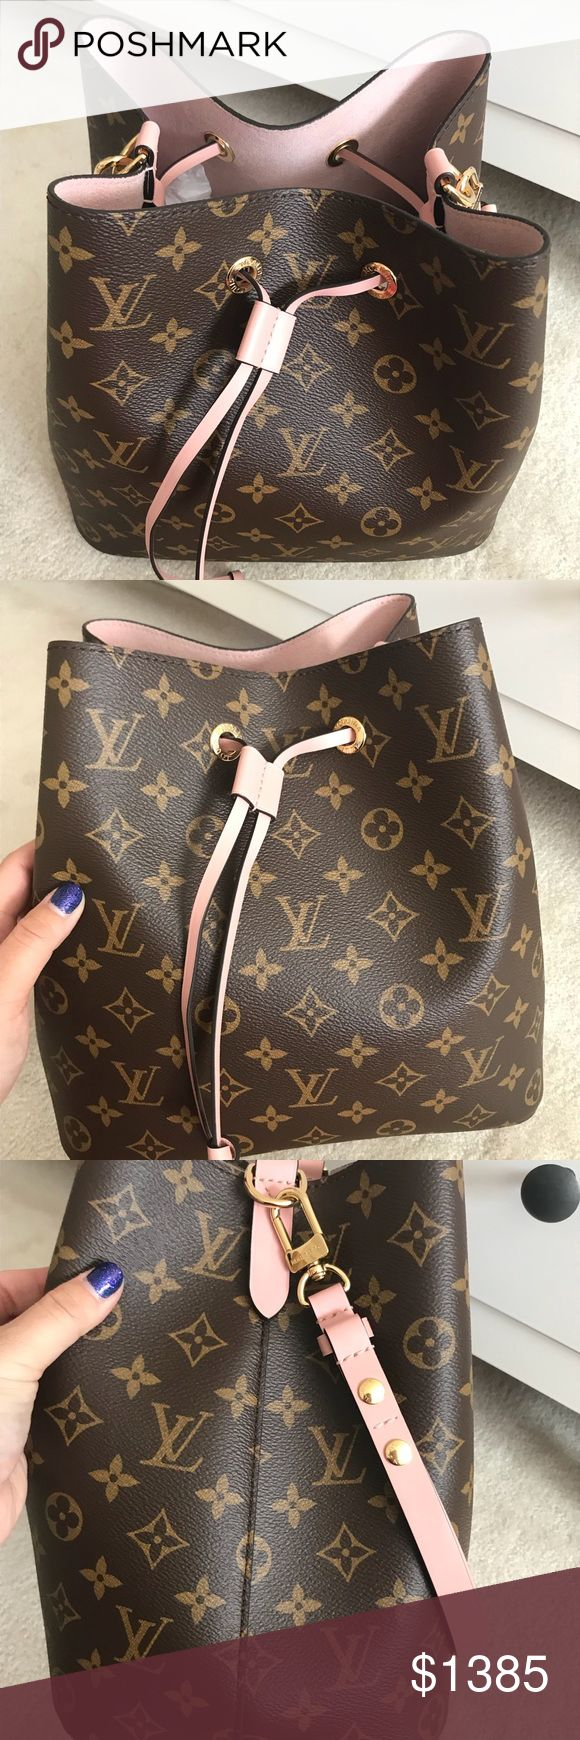 Louis Vuitton Neo Noe Rose Poudre In pristine condition. Comes with dustbag. Can be converted from shoulder to crossbody. Lightweight and a stunning color. Louis Vuitton Bags